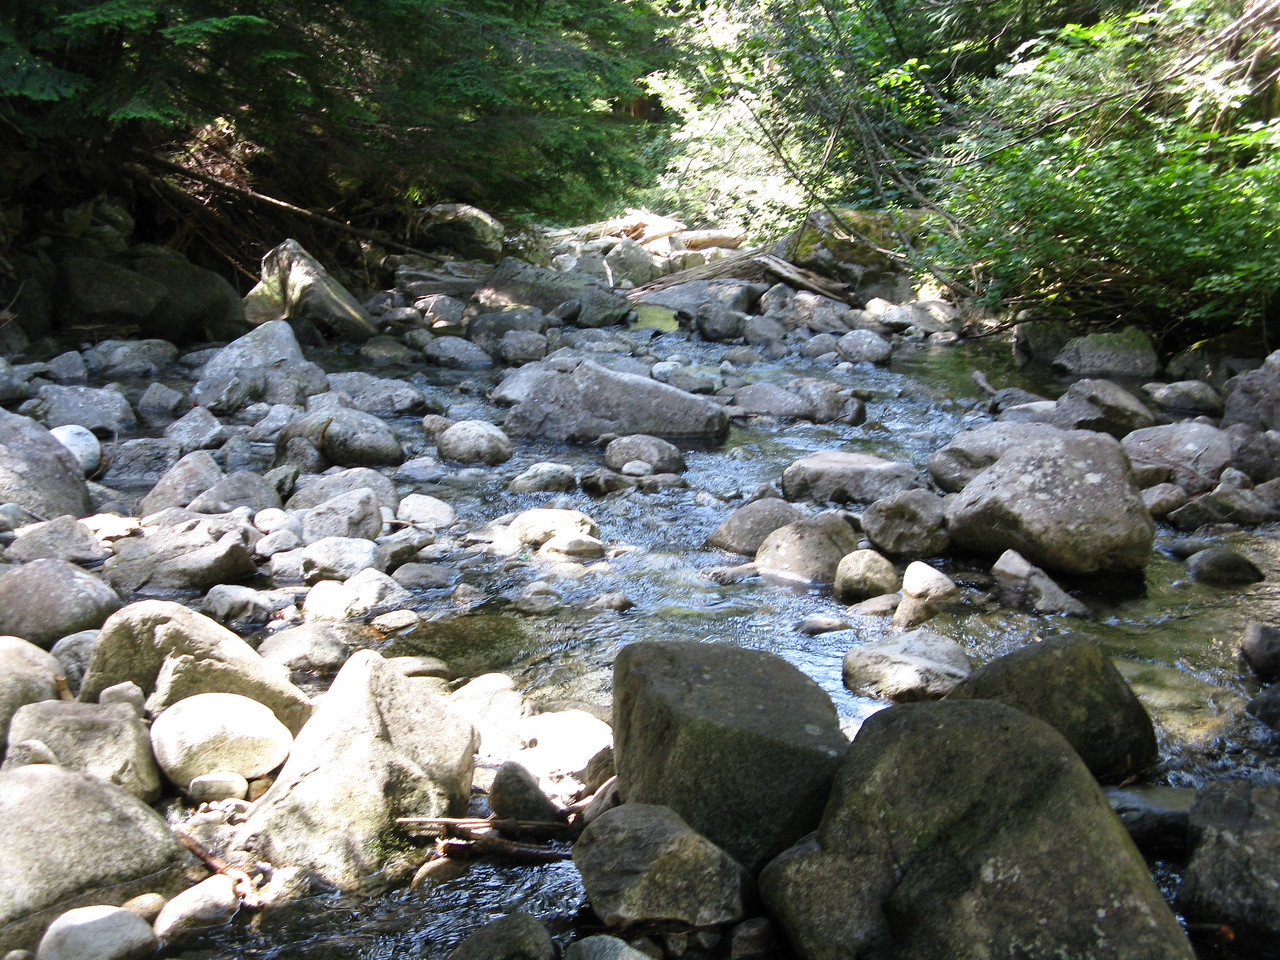 A downstream view of Big Creek on the other side of the bridge away from the falls.